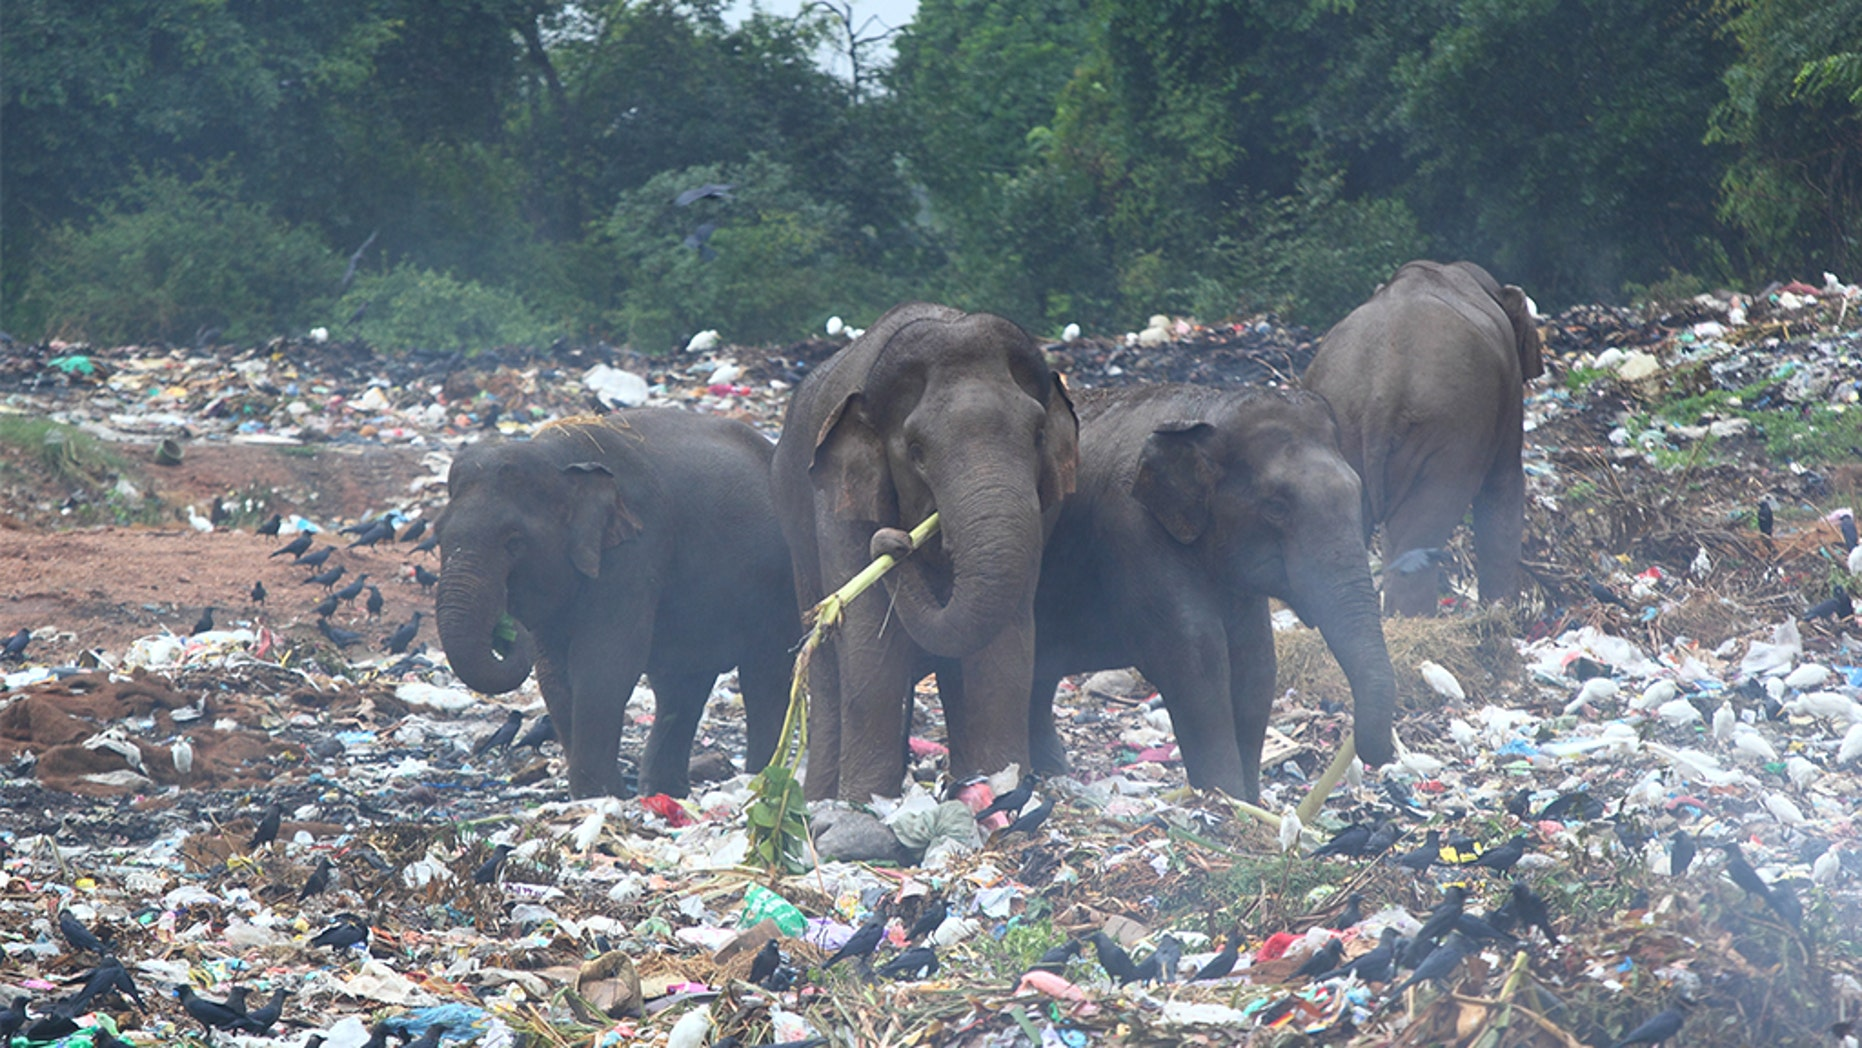 Group of wild elephants looking for banana trees in the middle of dumping ground (Sri Lanka, Trincomalee)